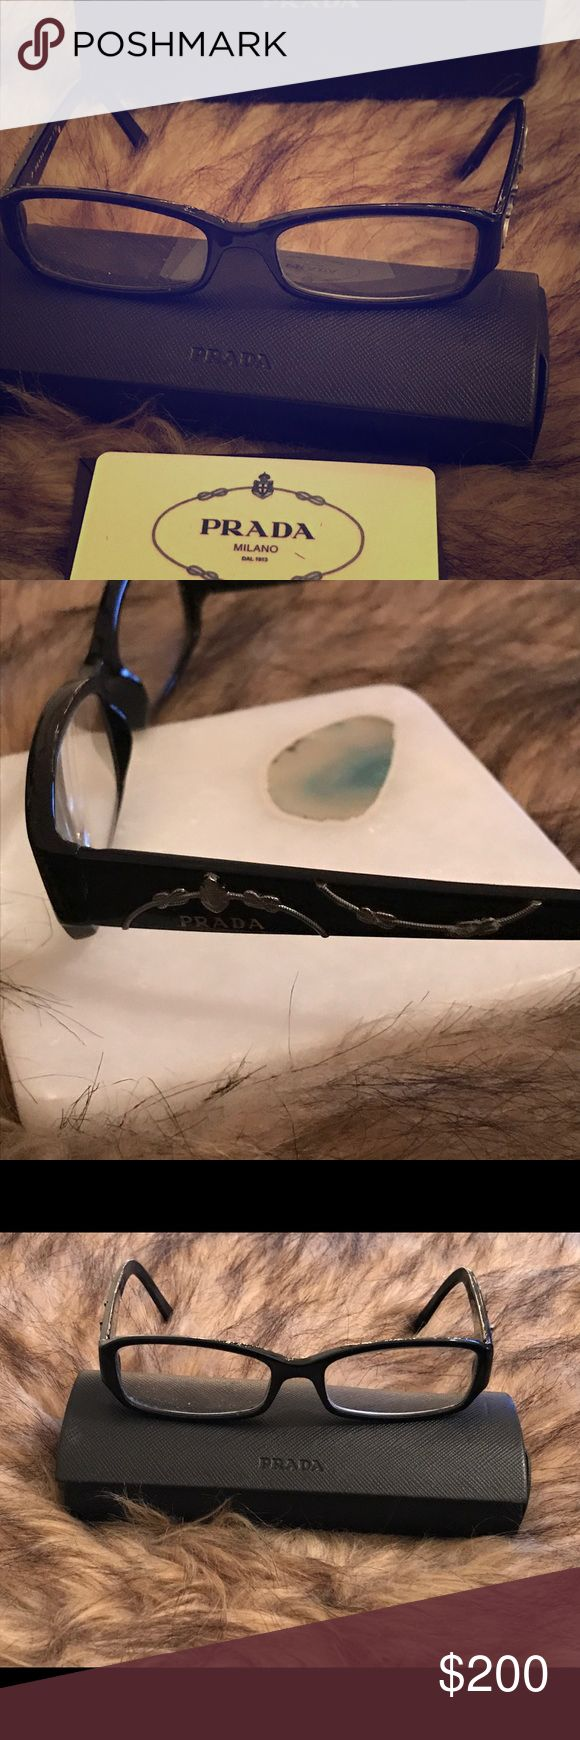 Prada glasses Authentic Prada glasses frames  I will remove the lenses and you can place prescription or non- prescription lenses They do not have tags Comes with authentic Prada card Prada Accessories Glasses